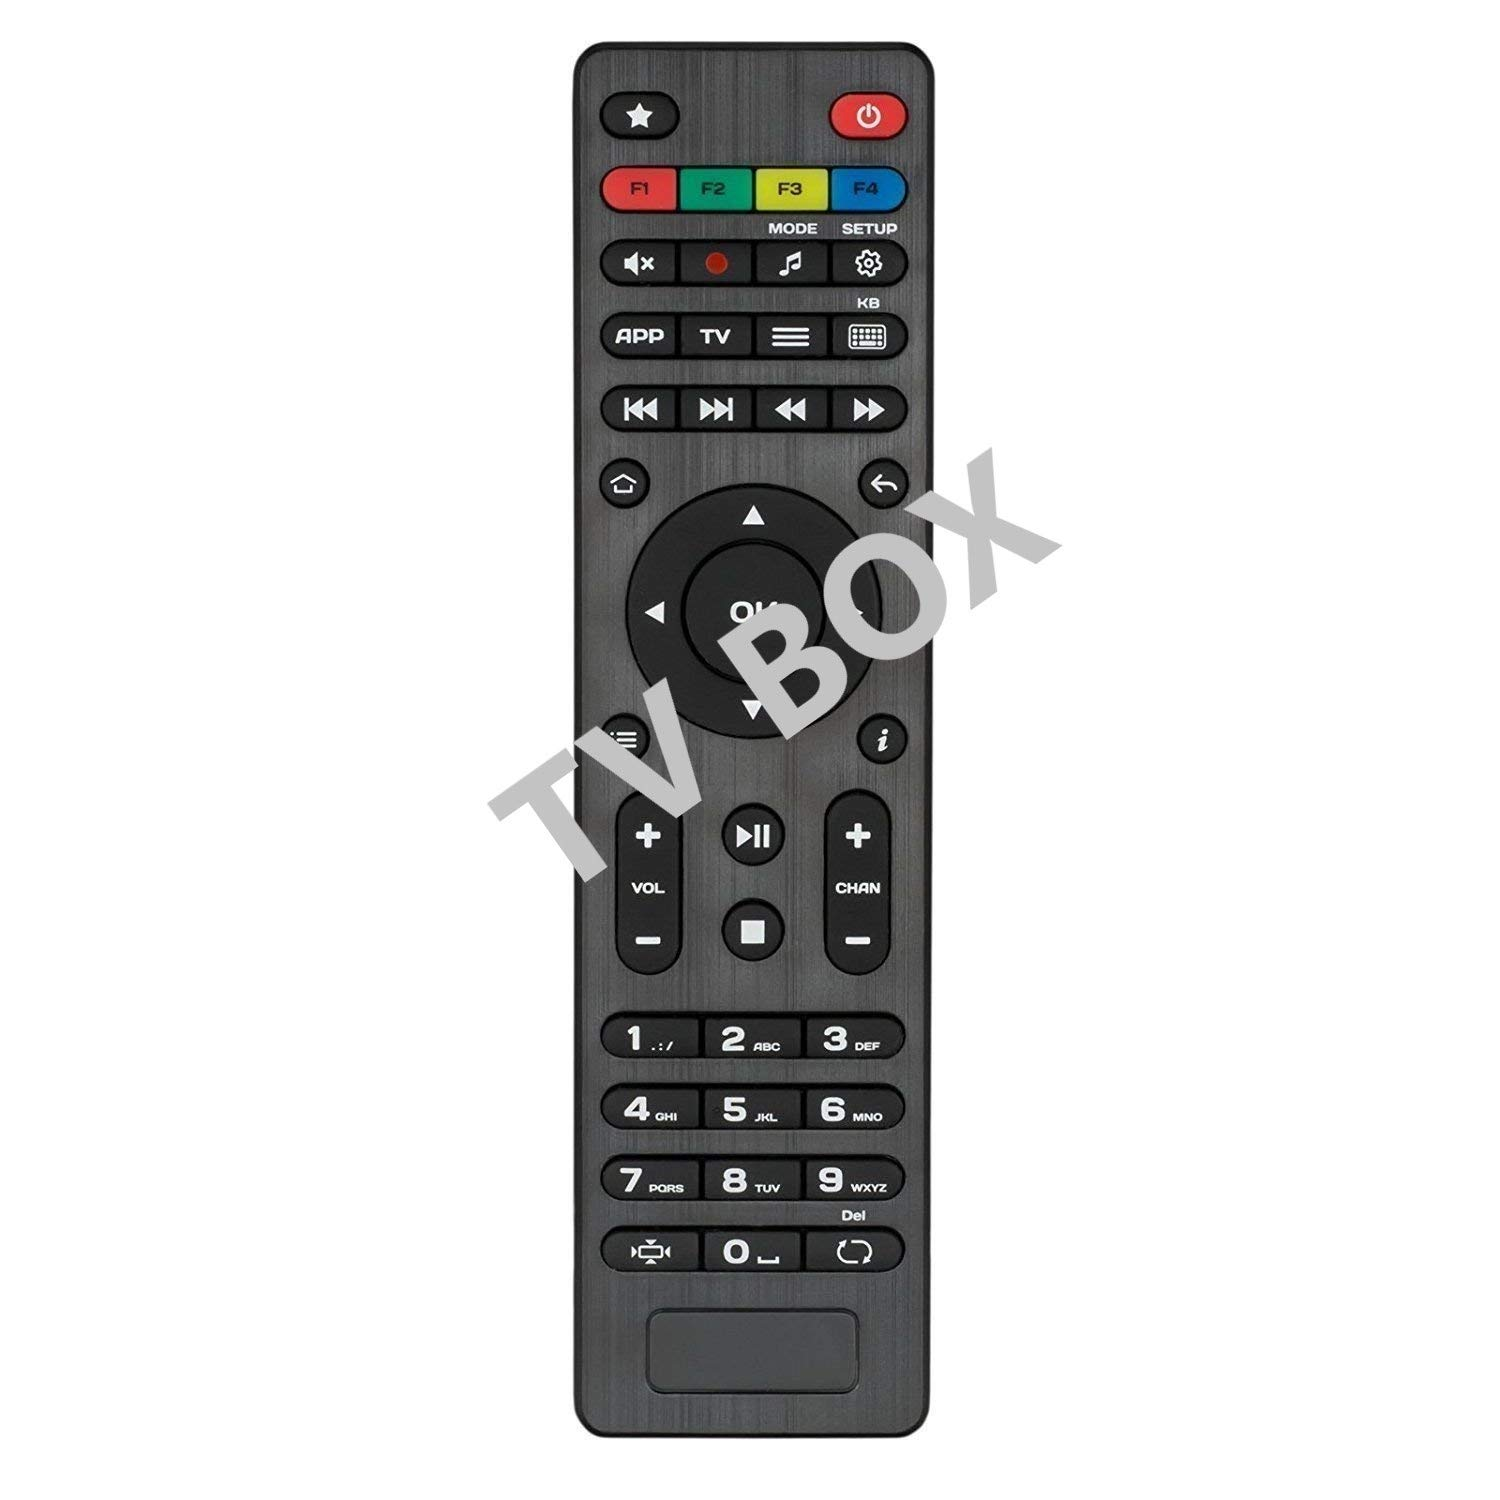 Informir Replacement IPTV Remote Control for Mag254 Mag256 Mag250 Mag257 Mag 322 by TV BOX